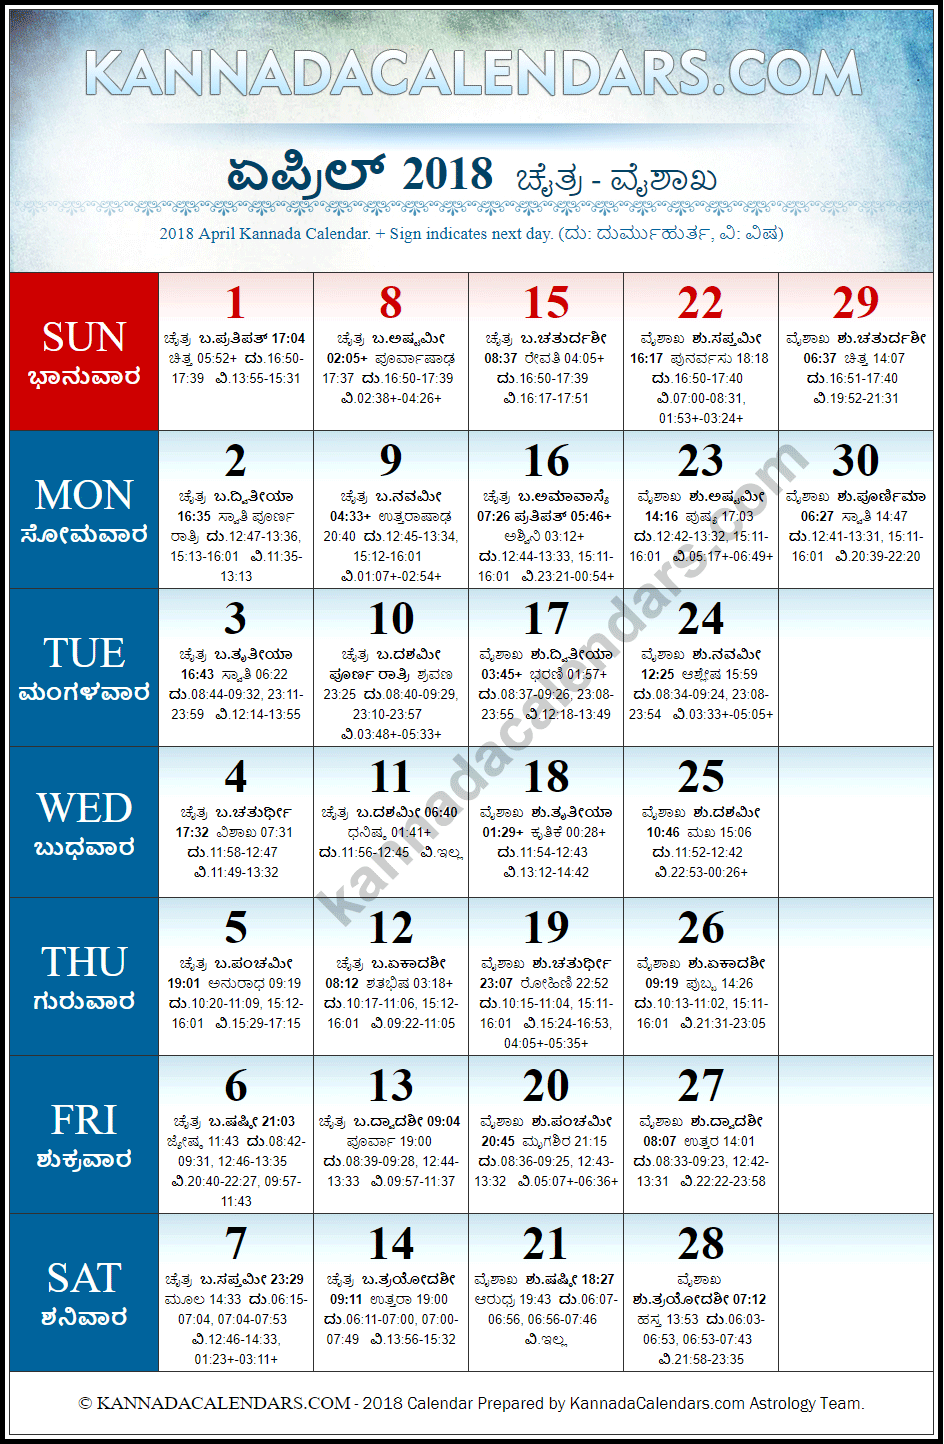 April 2018 Calendar April 2018 CalendarApril 2018 Calendar